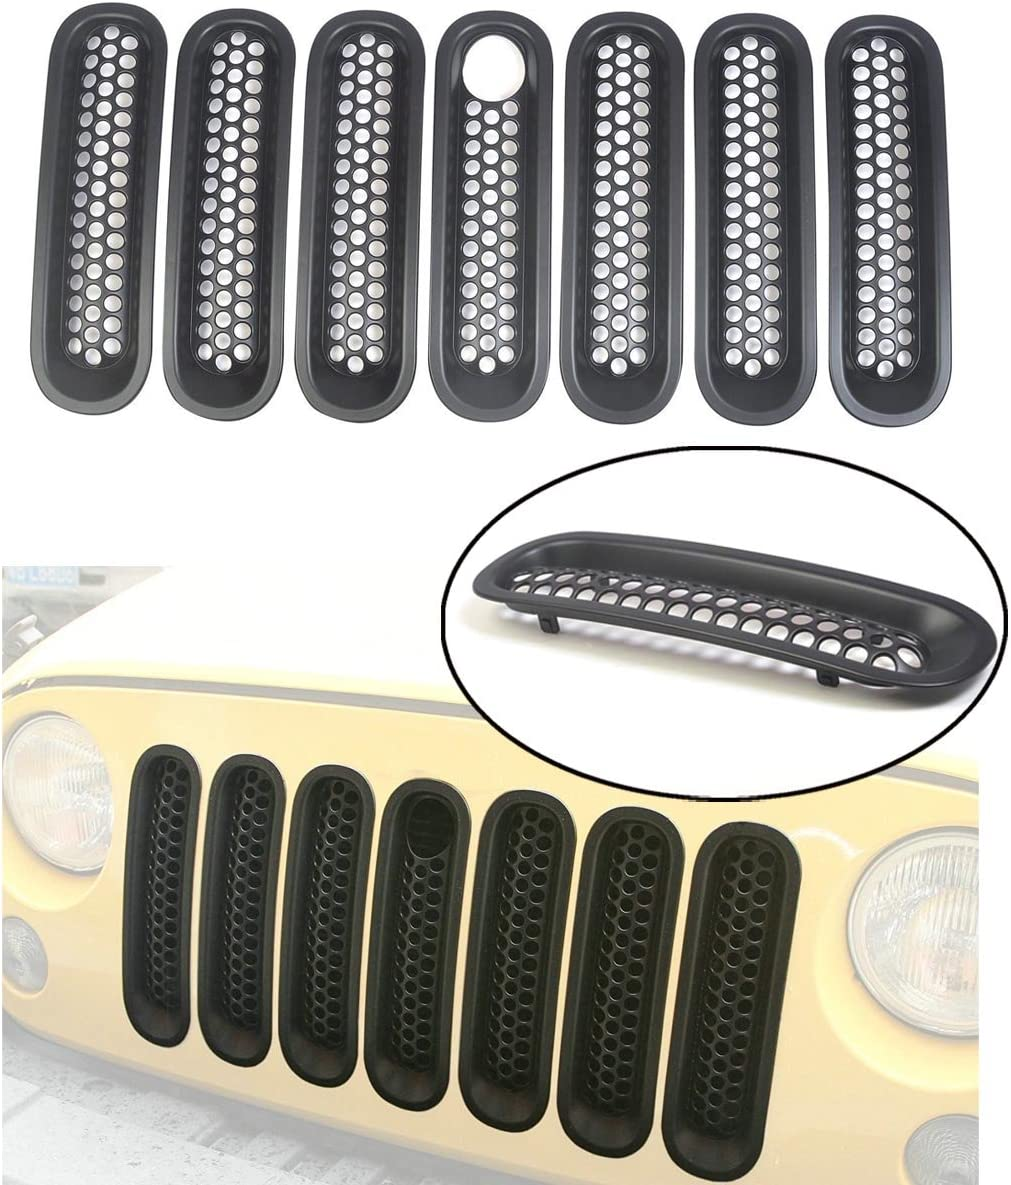 Bestong [Upgrade Clip in Version] 7 Pcs Front Mesh Grille Front Grill Inserts Kit Compatible for Jeep Wrangler Rubicon Sahara JK 2007-2017 (Black, with key hole)